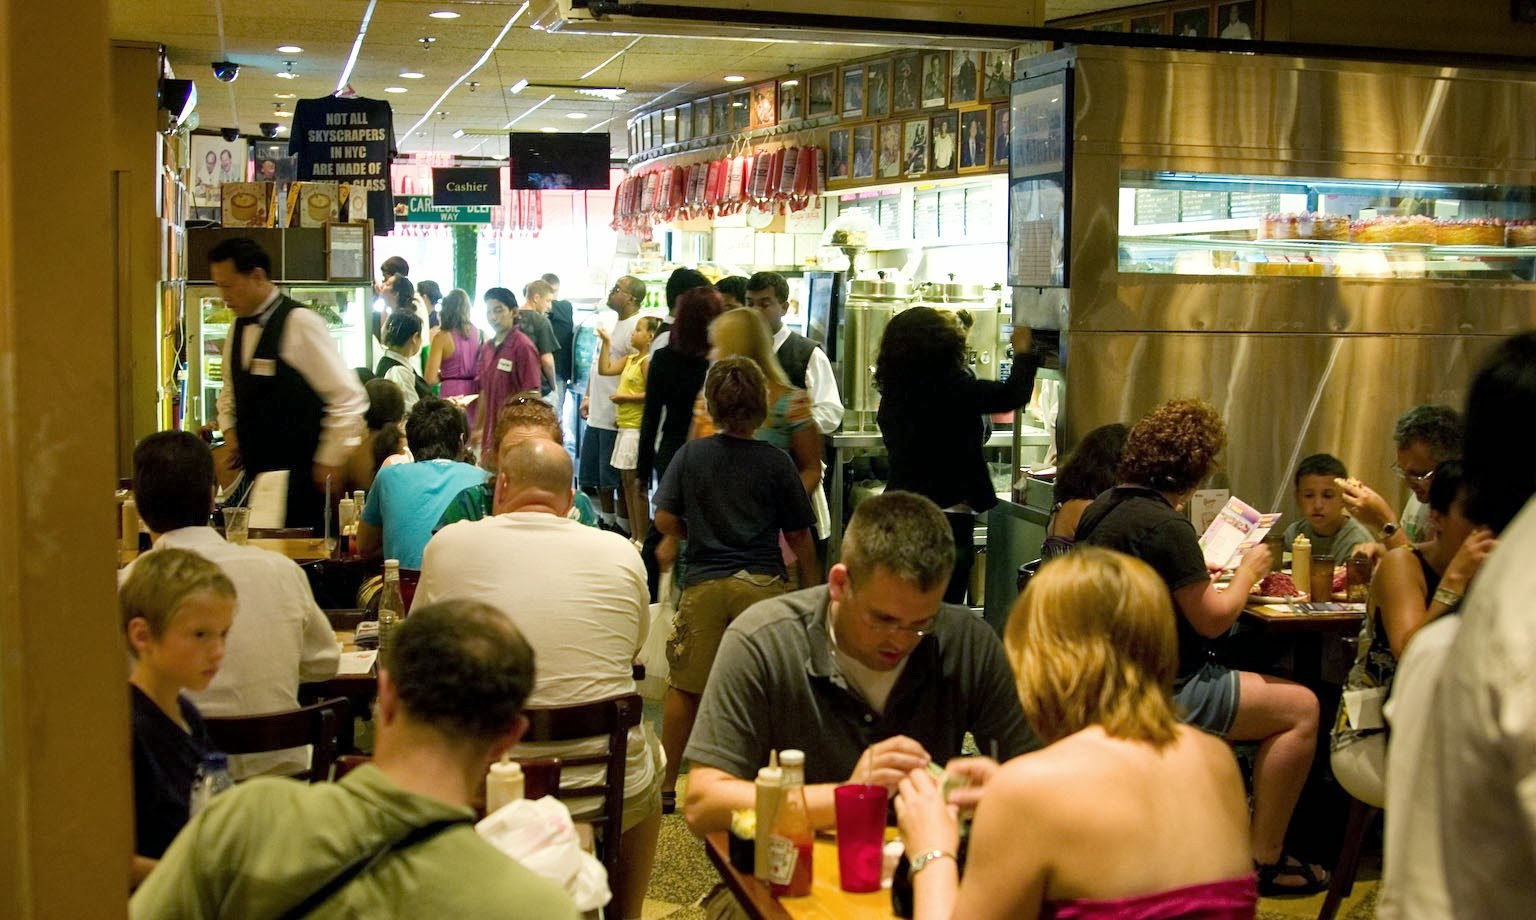 Over crowded eating place